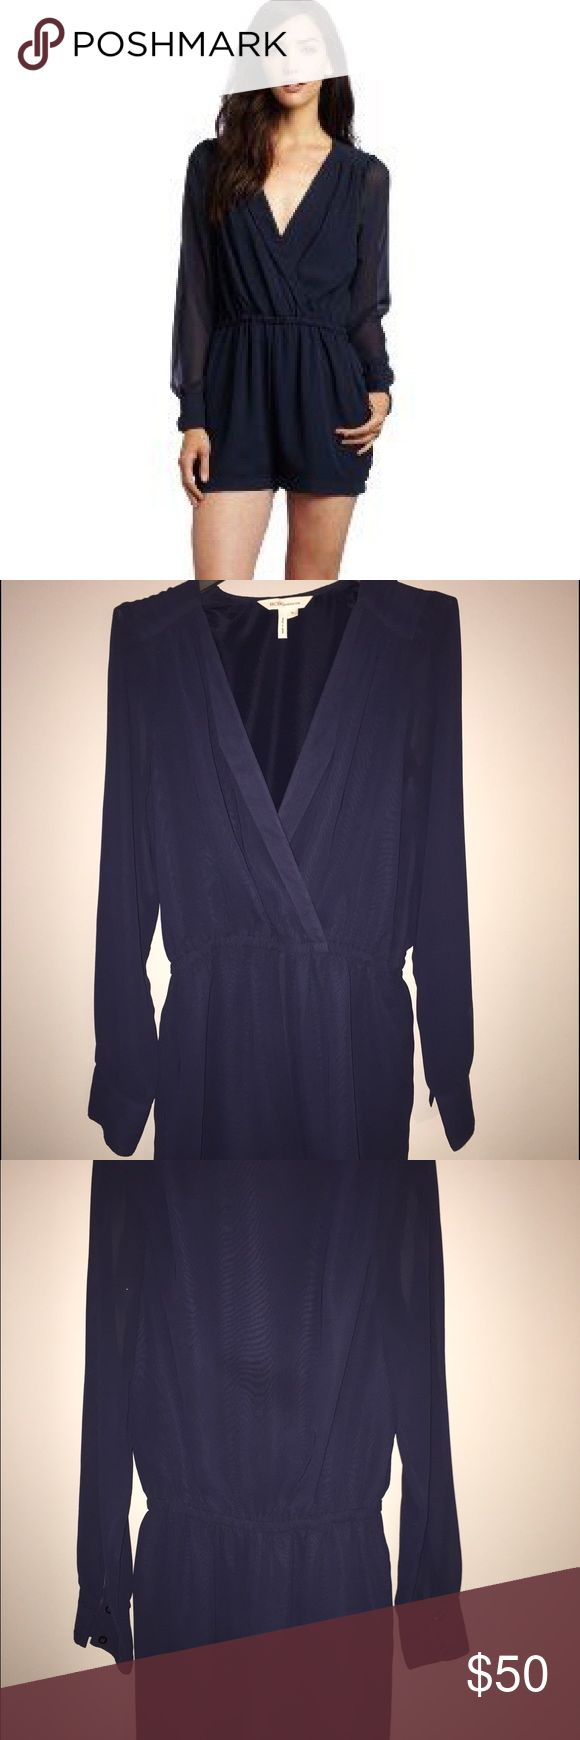 BCBGeneration Dark Navy Long Sleeve Romper Description     * Condition: NWOT Never worn     * Brand: BCBGeneration     * Style Number: VDW9C085     * Size: US M     * Color: Dark Navy     * Silhouette: Blouson Romper     * Sleeve Length: Long Sleeves     * Dress Length: Above the knee     * Total Length: 33 inches     * Bust: 37 inches     * Waist:  Elastic     * Hips: 39 inches     * Inseam: 2 inches (hits mid-thigh)     * Material: 100% Polyester     * Fabric Type: Semi-Sheer Chiffon…